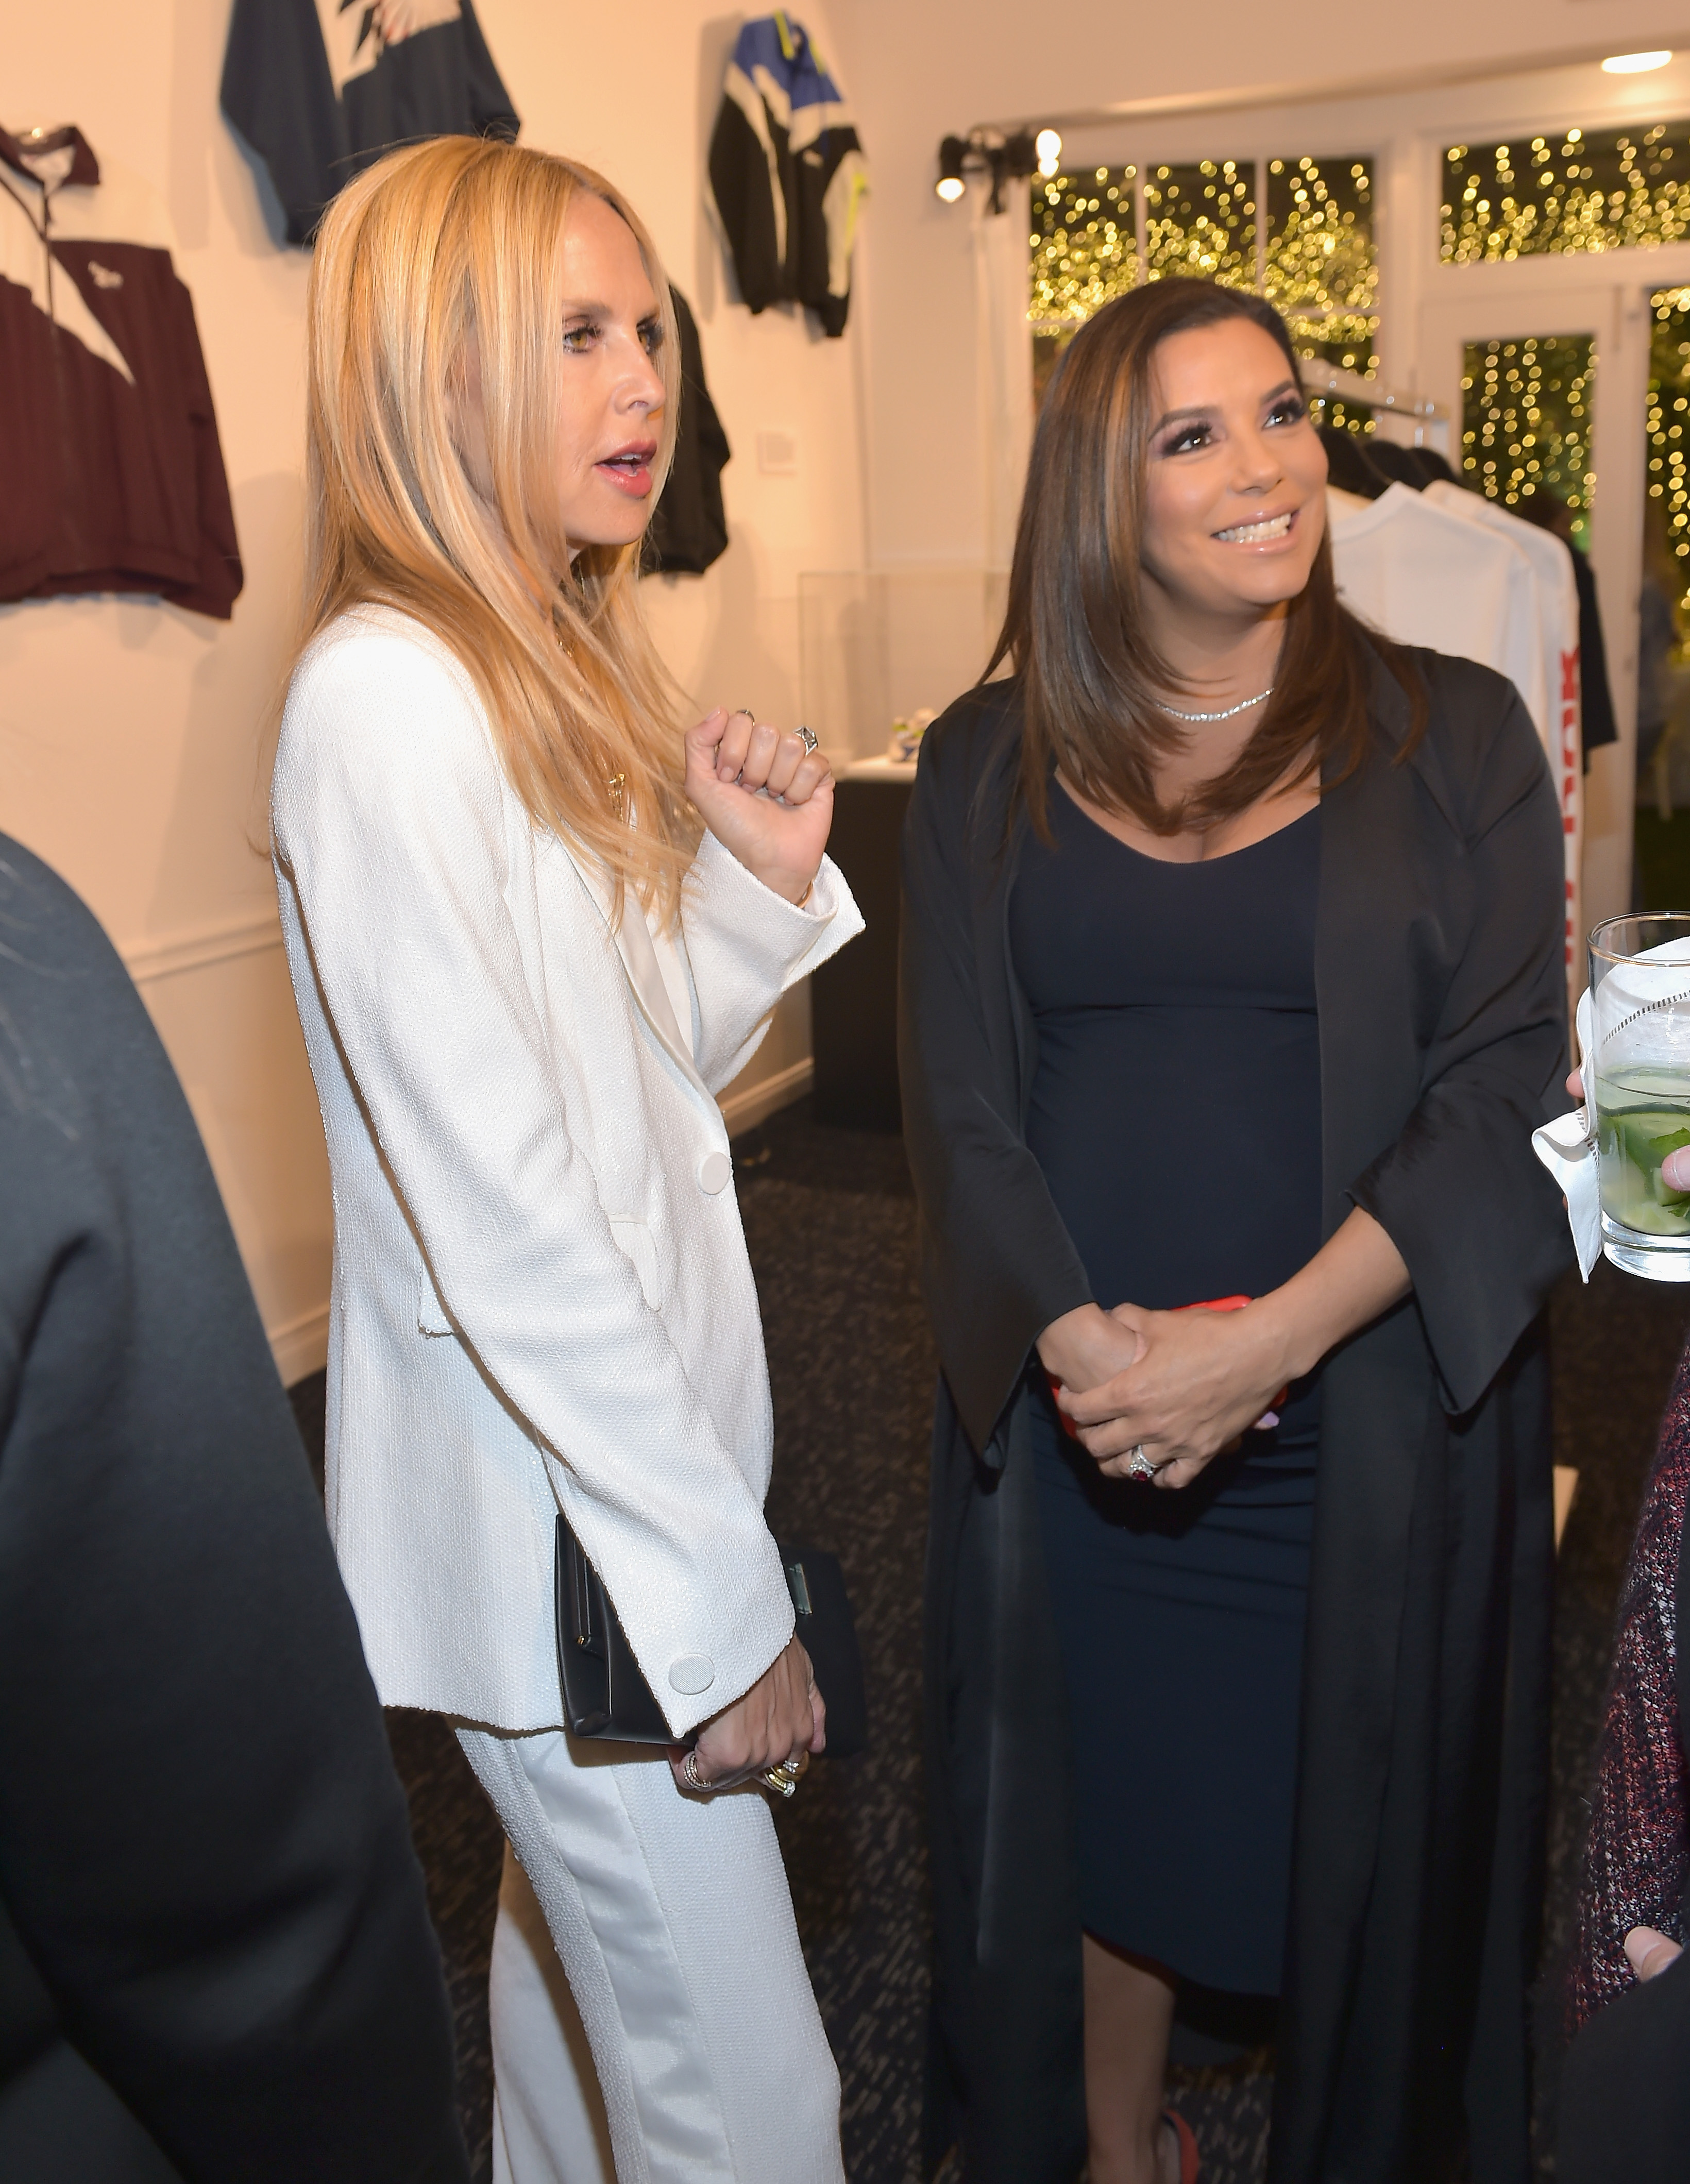 Rachel Zoe and Eva Longoria attend an event celebrating Reebok and Victoria Beckham celebrate their partnership. Special guest Shaquille O'Neal officially welcomes Victoria to the Reebok Team at The House on Sunset on April 12, 2018 in Beverly Hills, California. (Photo by Donato Sardella/Getty Images for Reebok) *** Local Caption *** Rachel Zoe;Eva Longoria